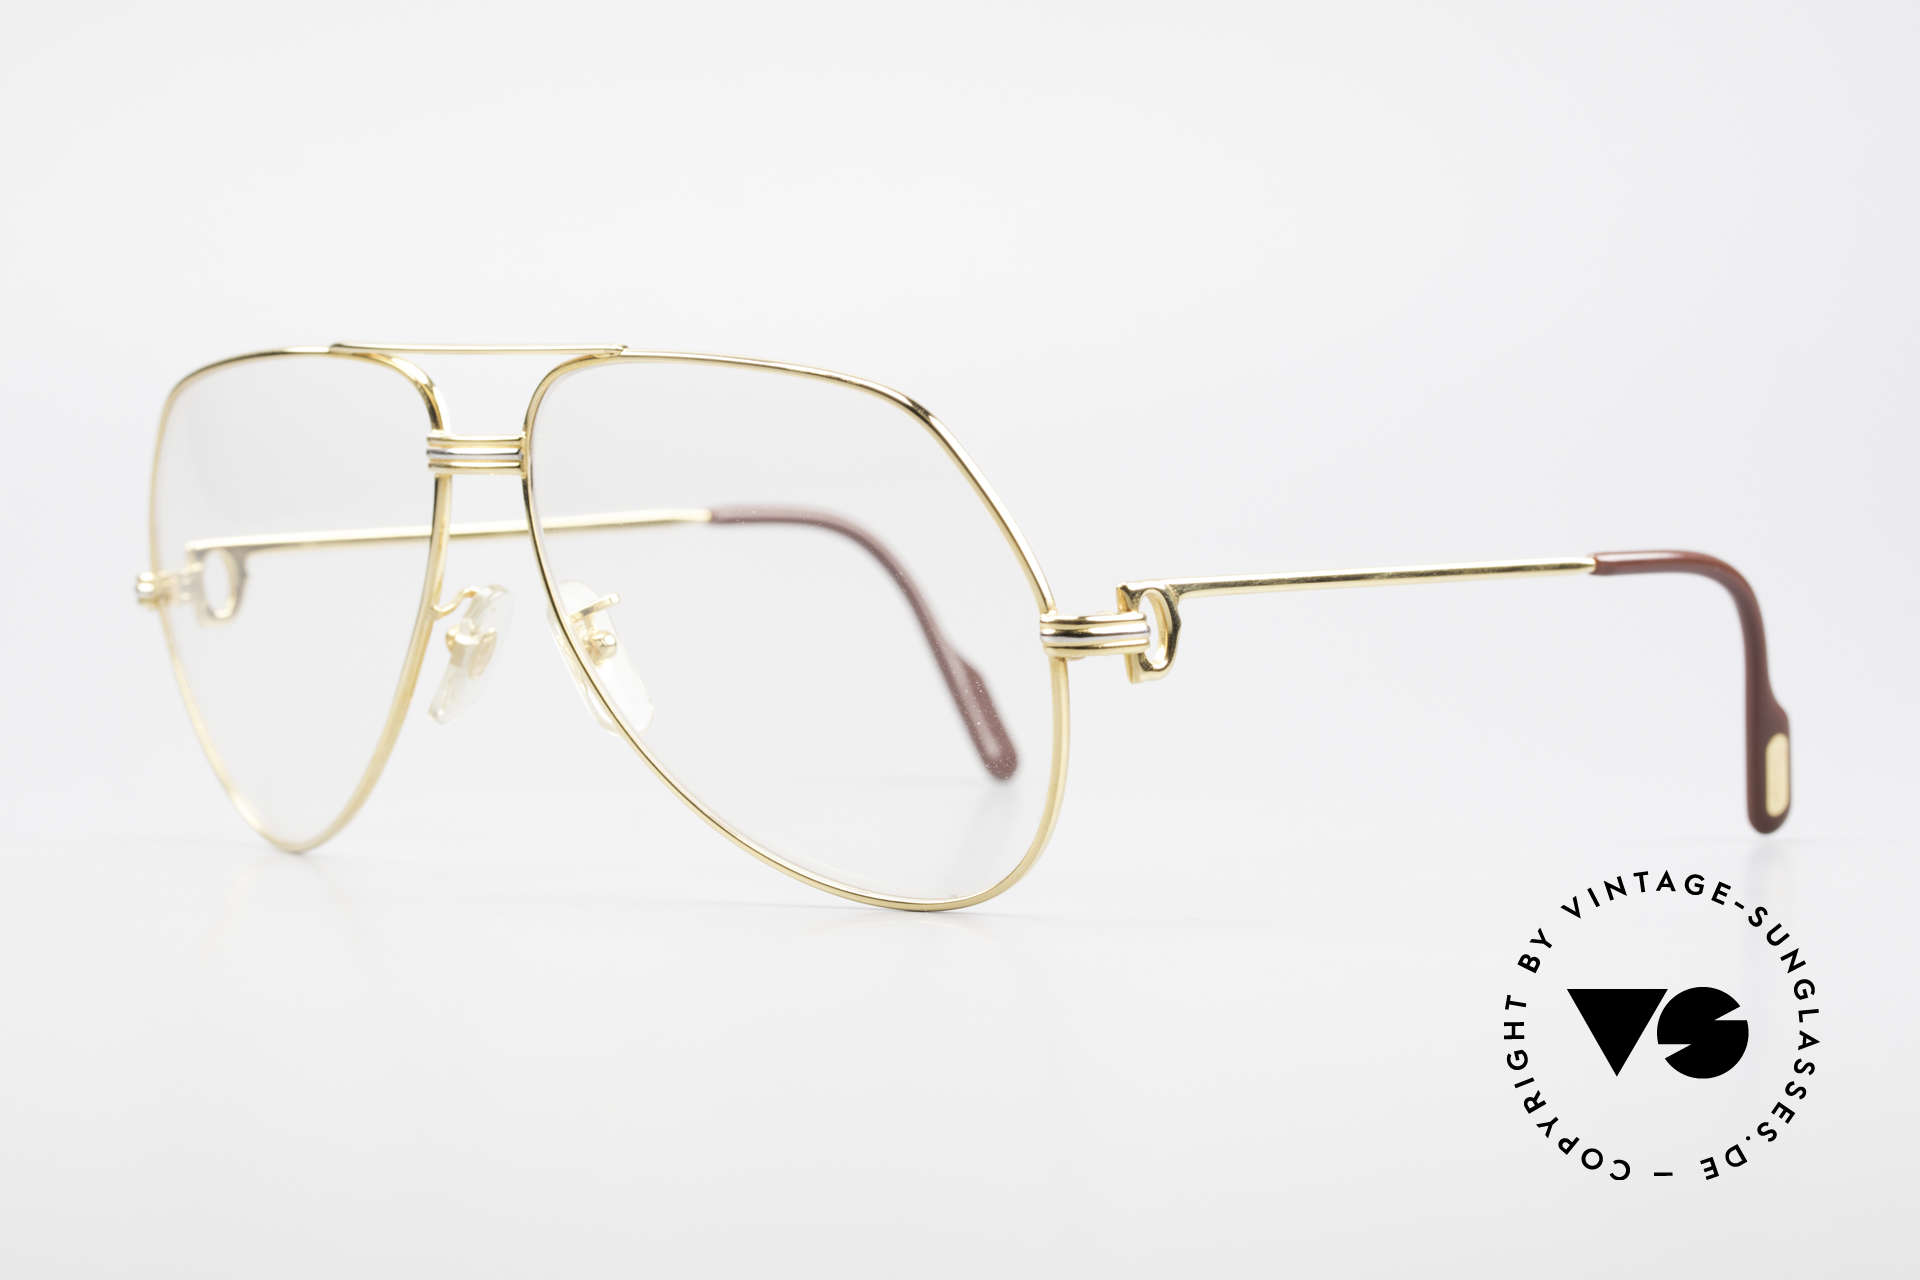 Cartier Vendome LC - L Changeable Cartier Sun Lenses, 22ct gold-plated (with LC decor): LARGE size 62-14, 140, Made for Men